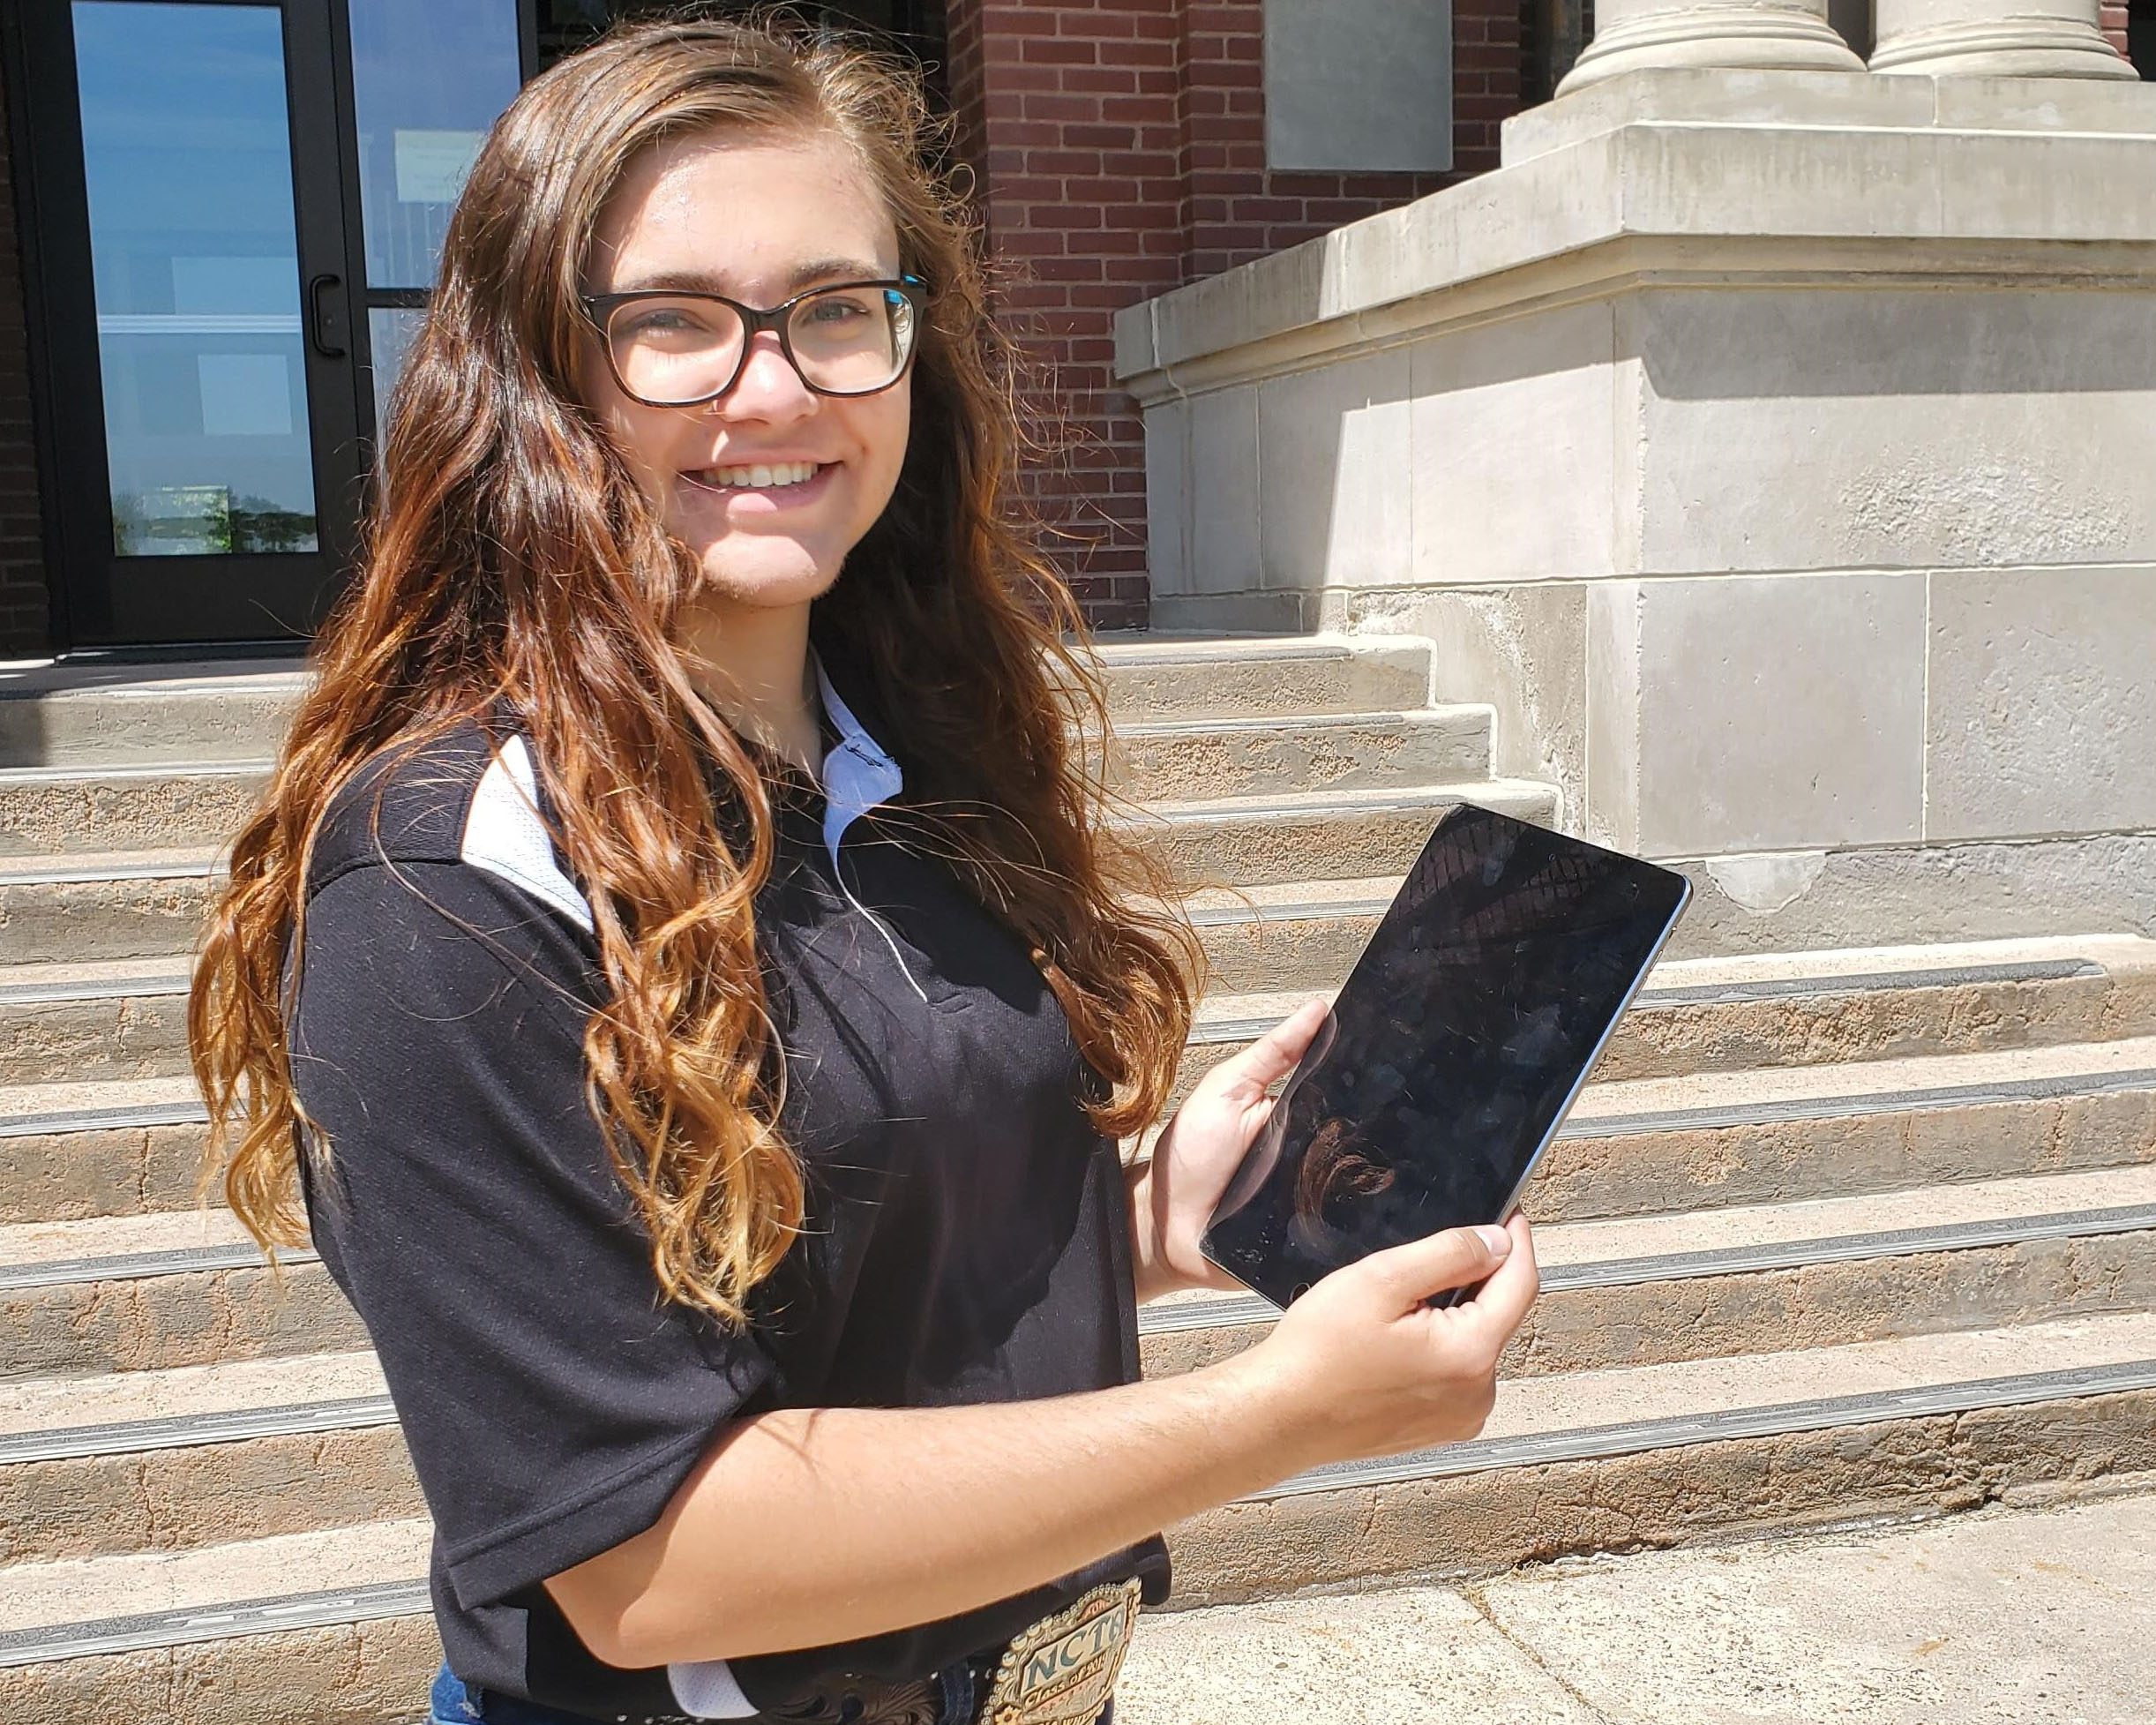 Anna Whyman, a native of Palmyra and animal science graduate, is giving virtual tours of the Nebraska College of Technical Agriculture campus plus conversations with NCTA faculty and staff. (McConville / NCTA photo)